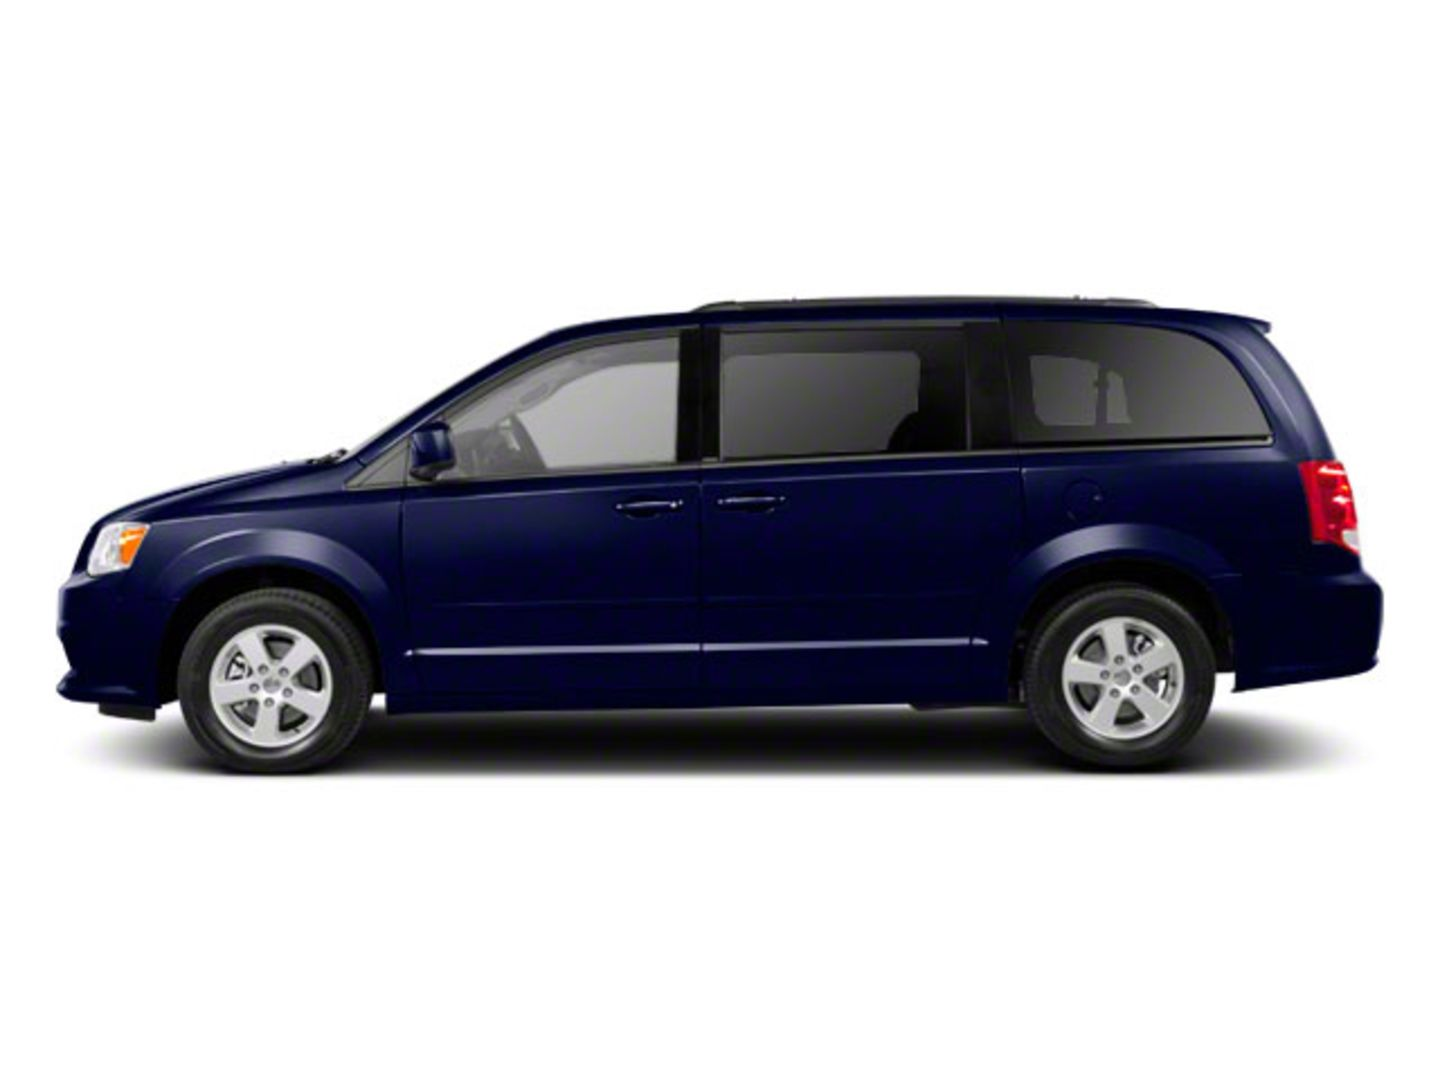 2011 Dodge Grand Caravan SXT for sale in Leduc, Alberta